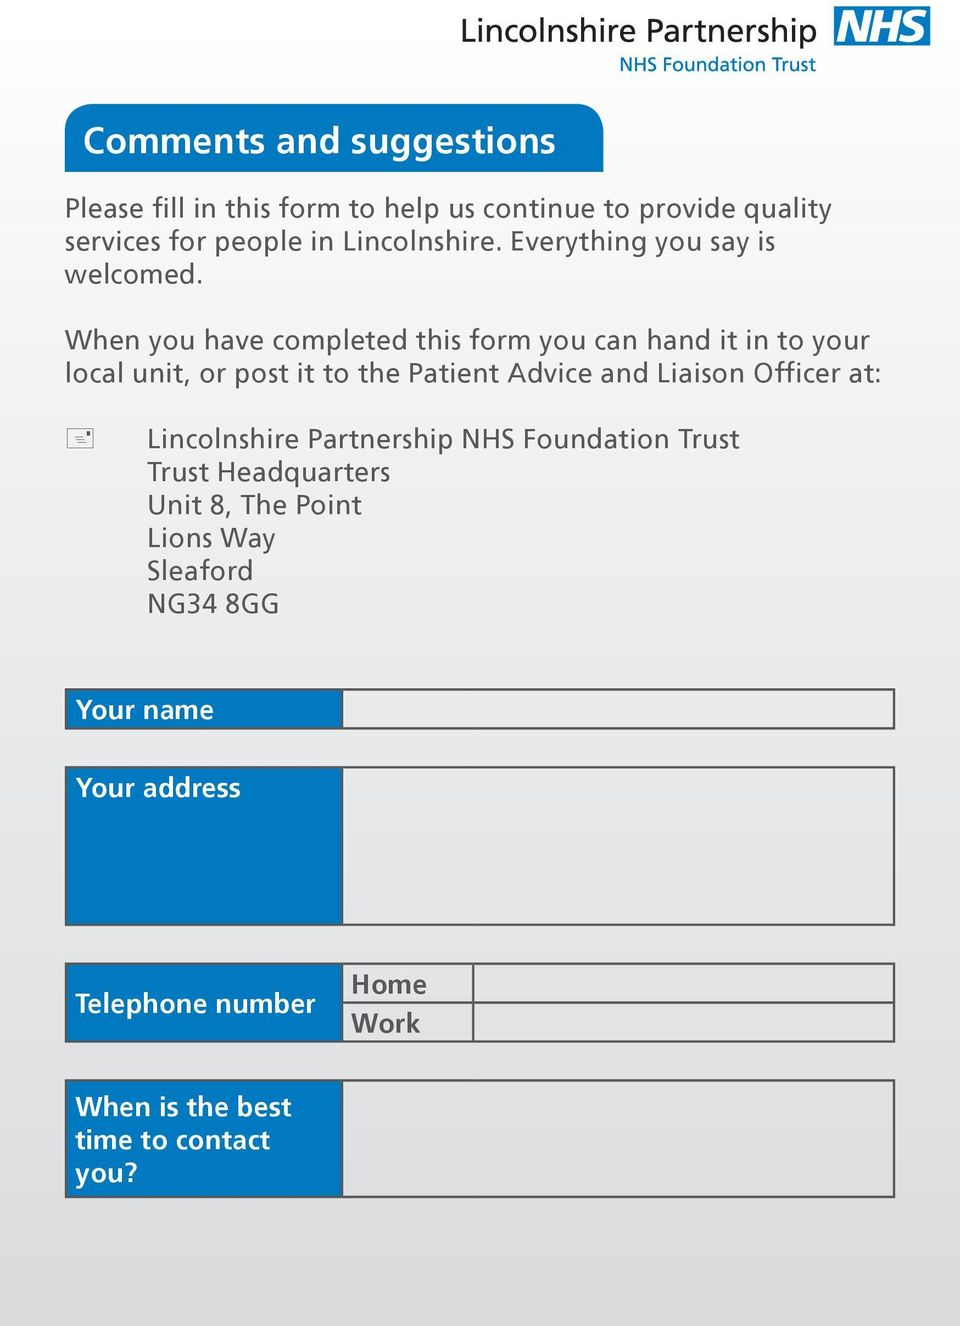 When you have completed this form you can hand it in to your local unit, or post it to the Patient Advice and Liaison